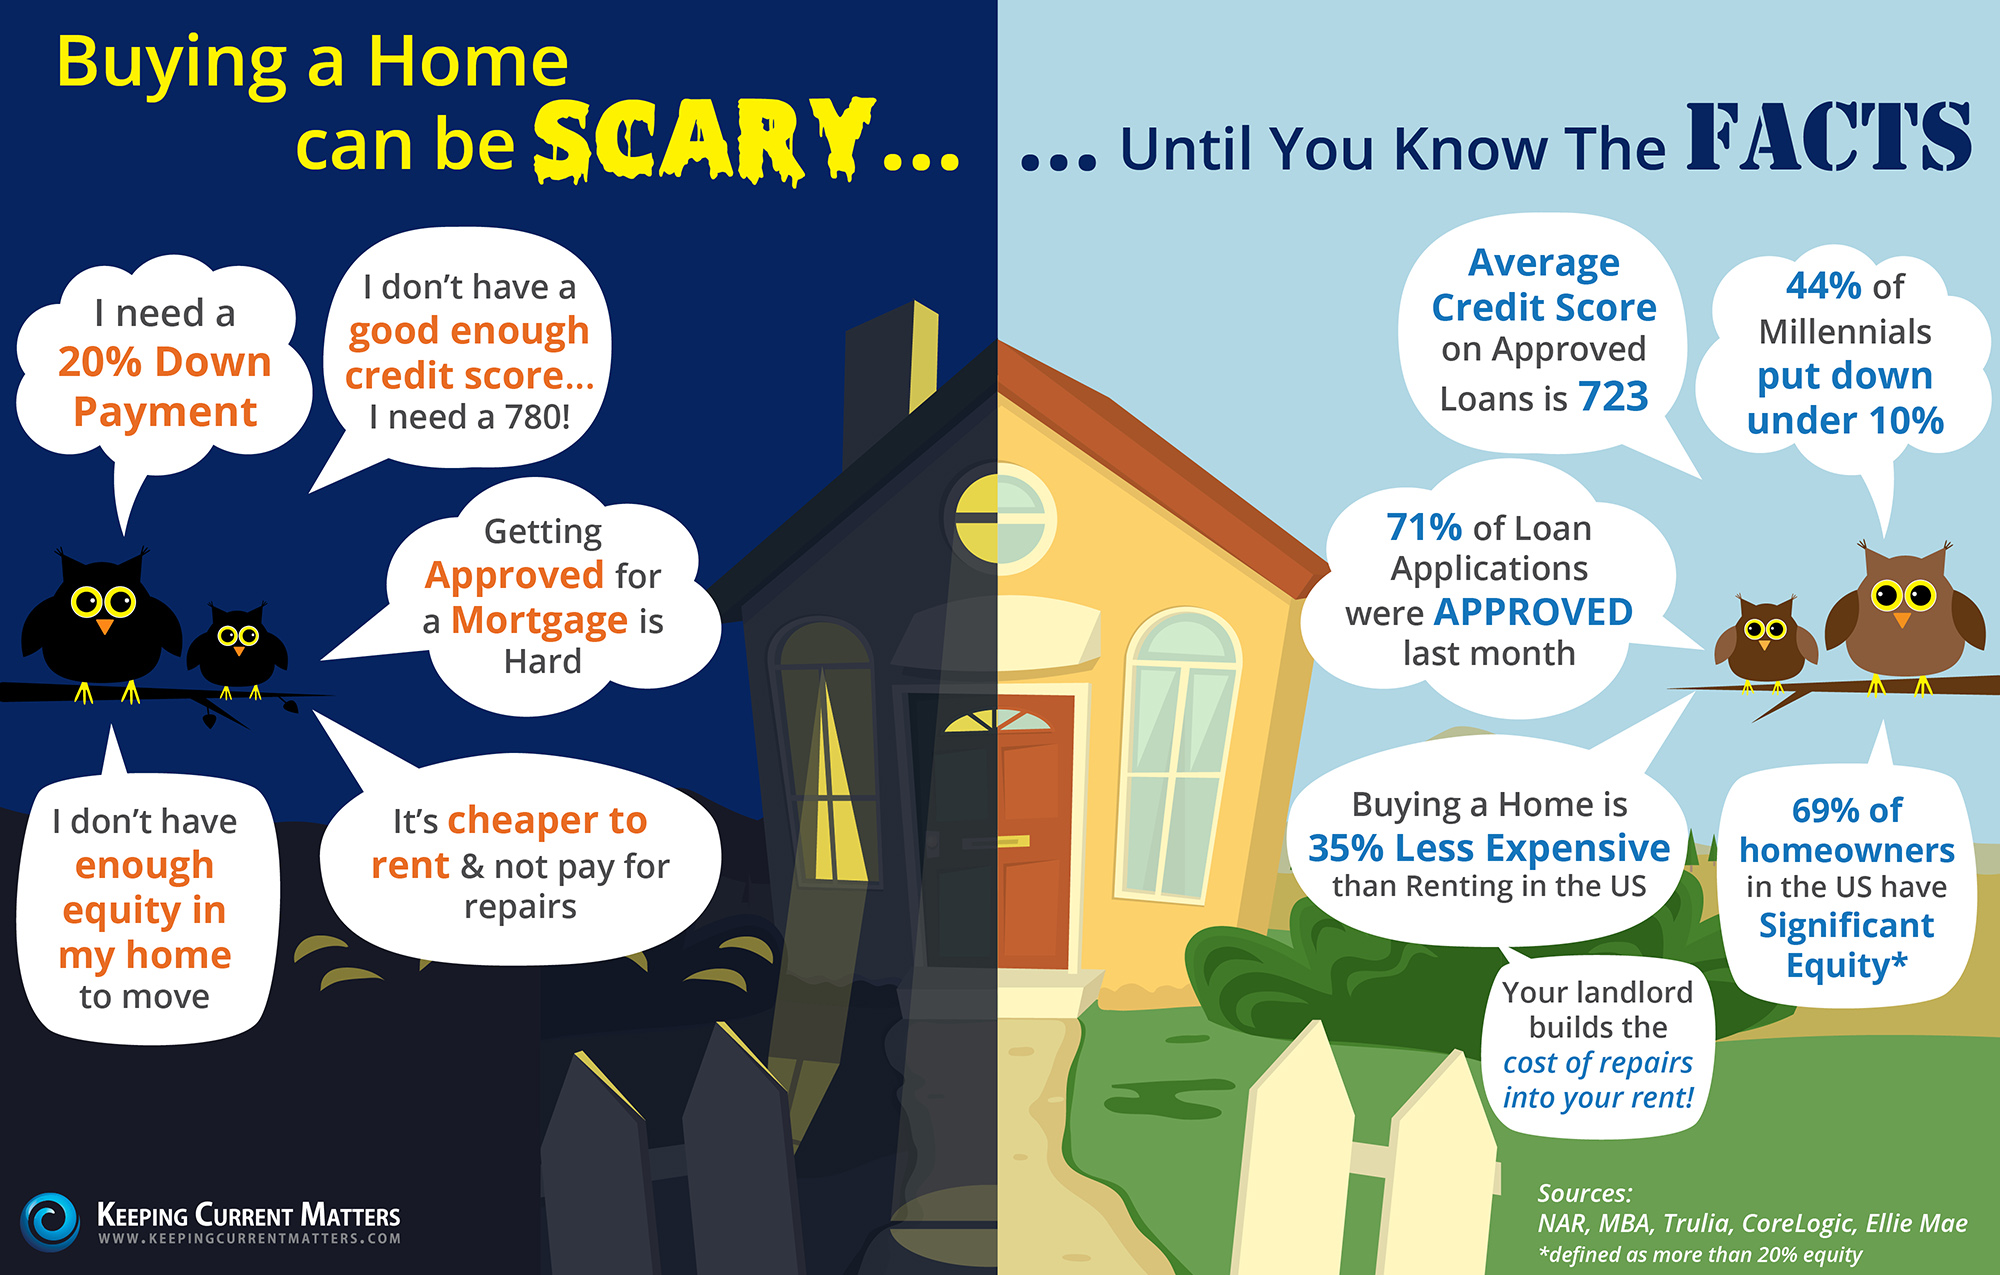 Buying a home is NOT Scary .. That is what Halloween if for!